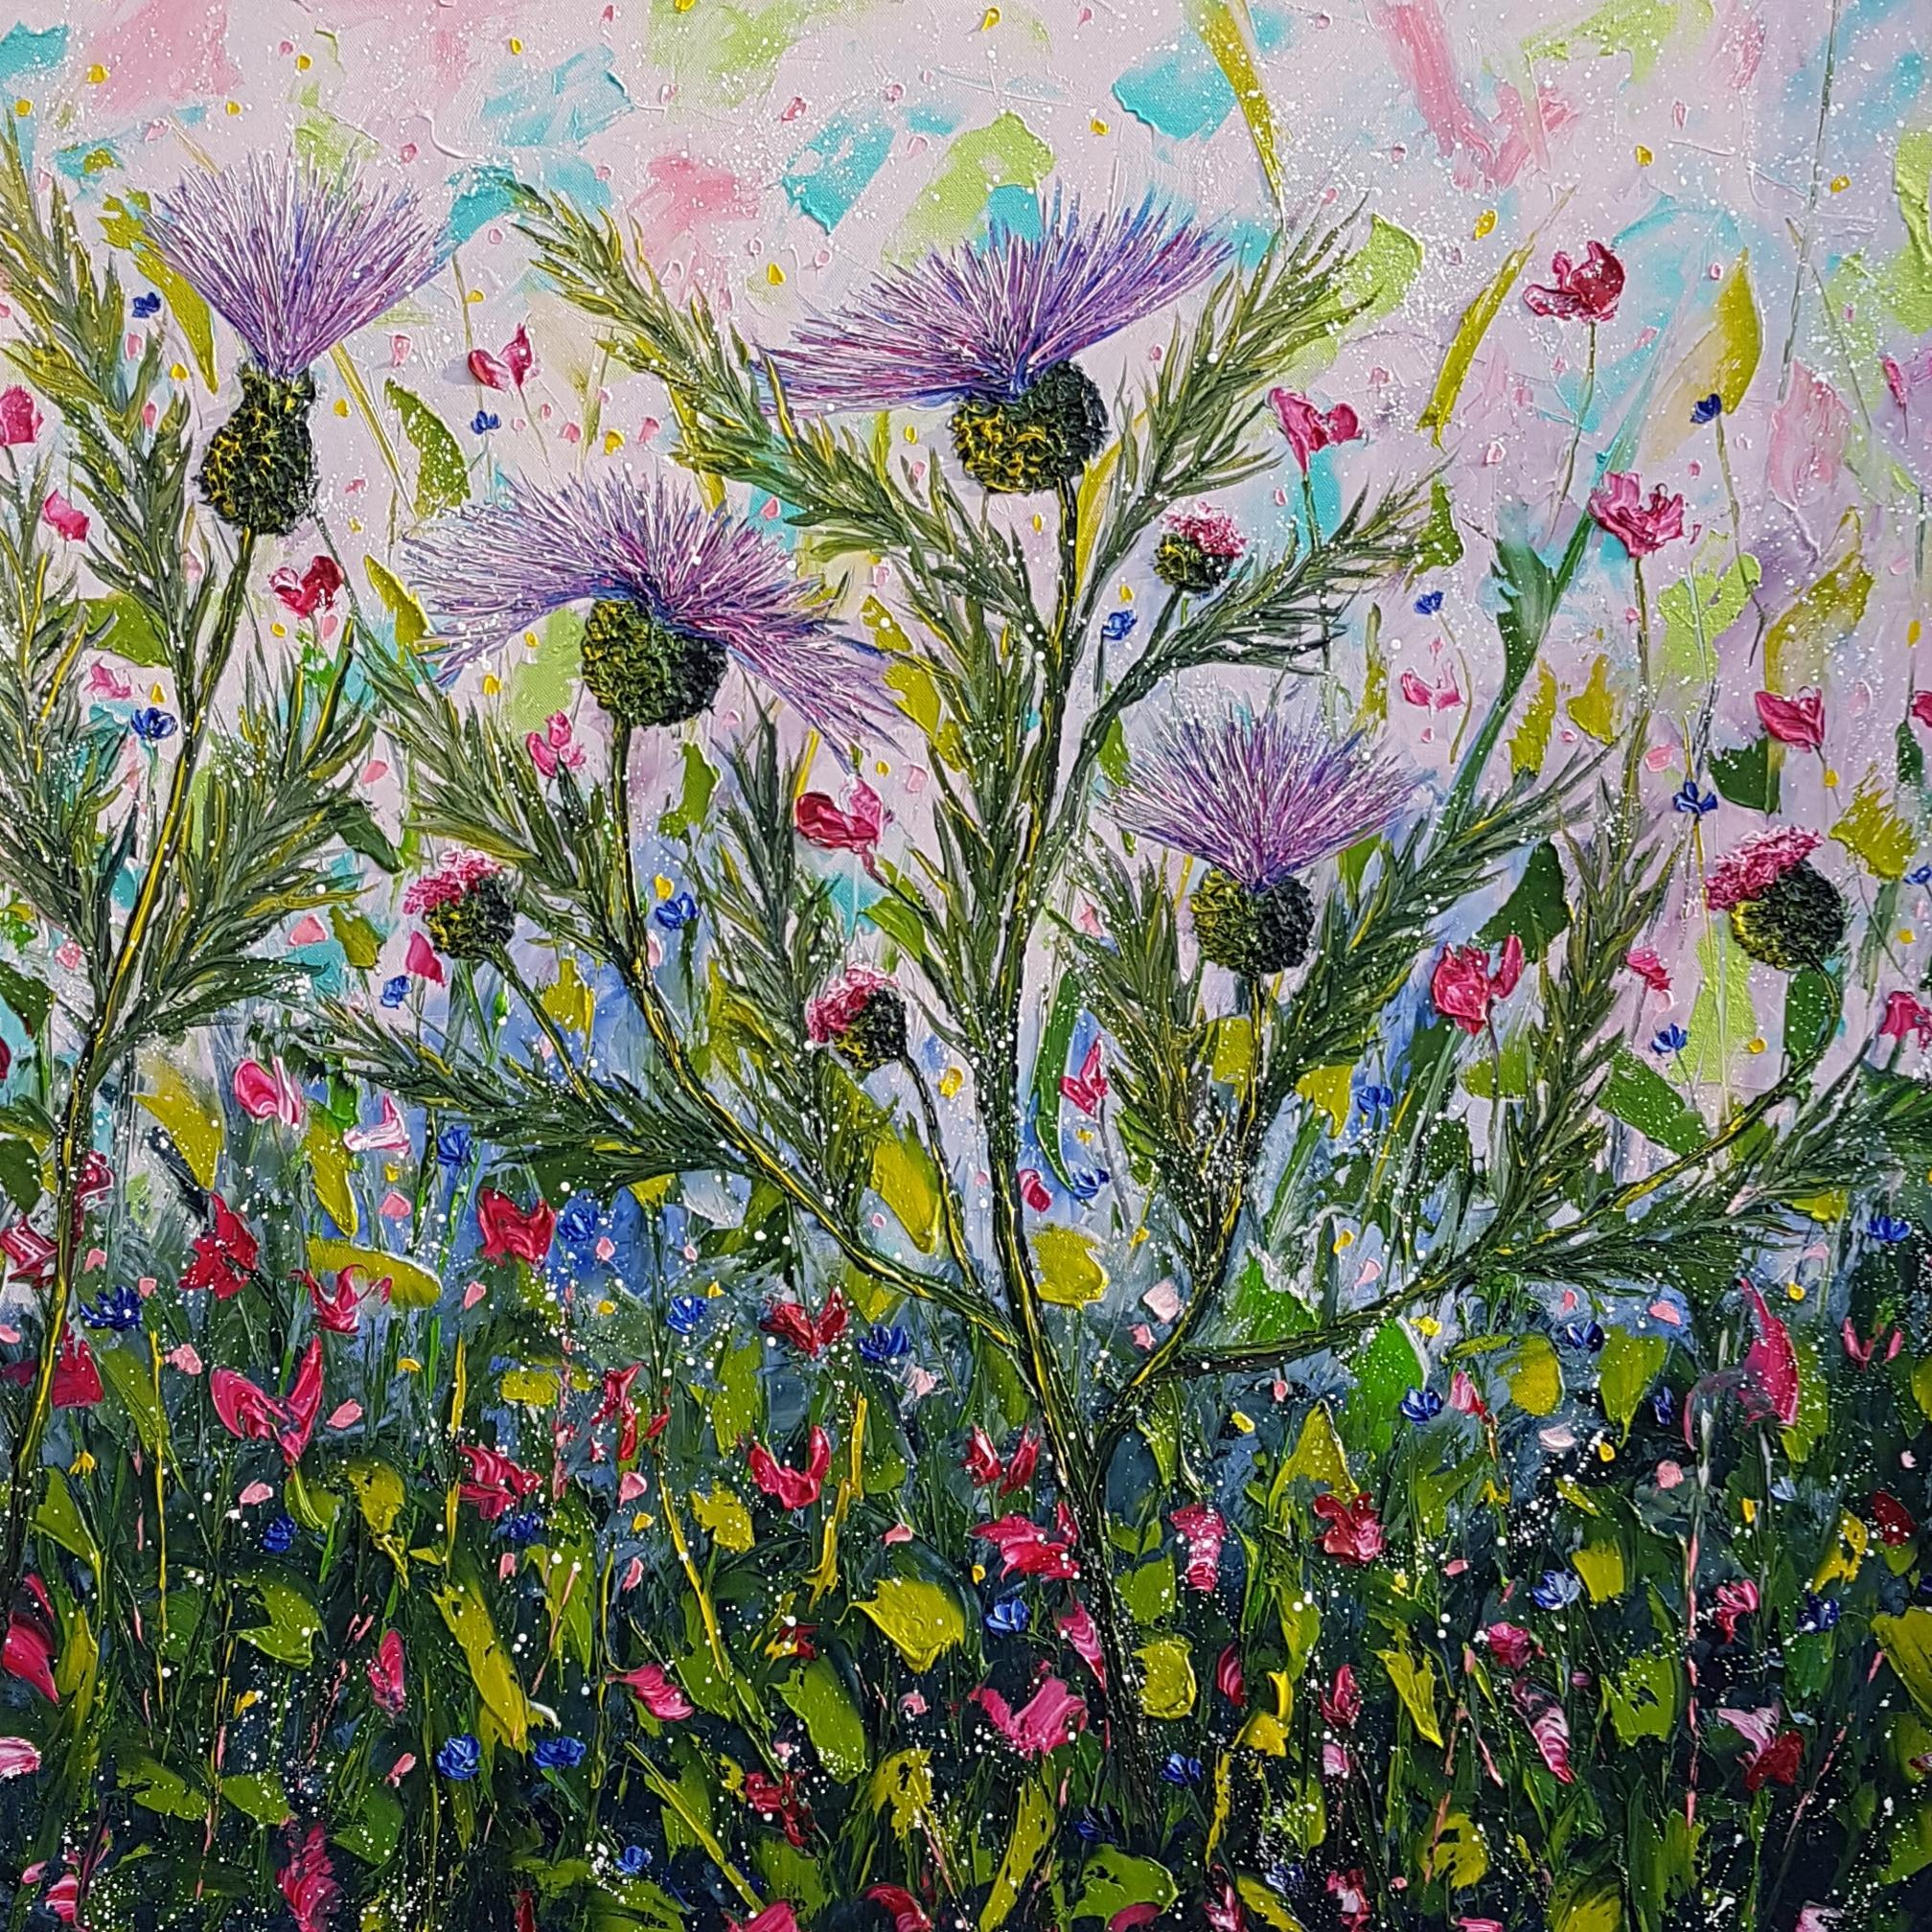 Spring Joy - Contemporary Figurative Painting by Elena Guiullaumin